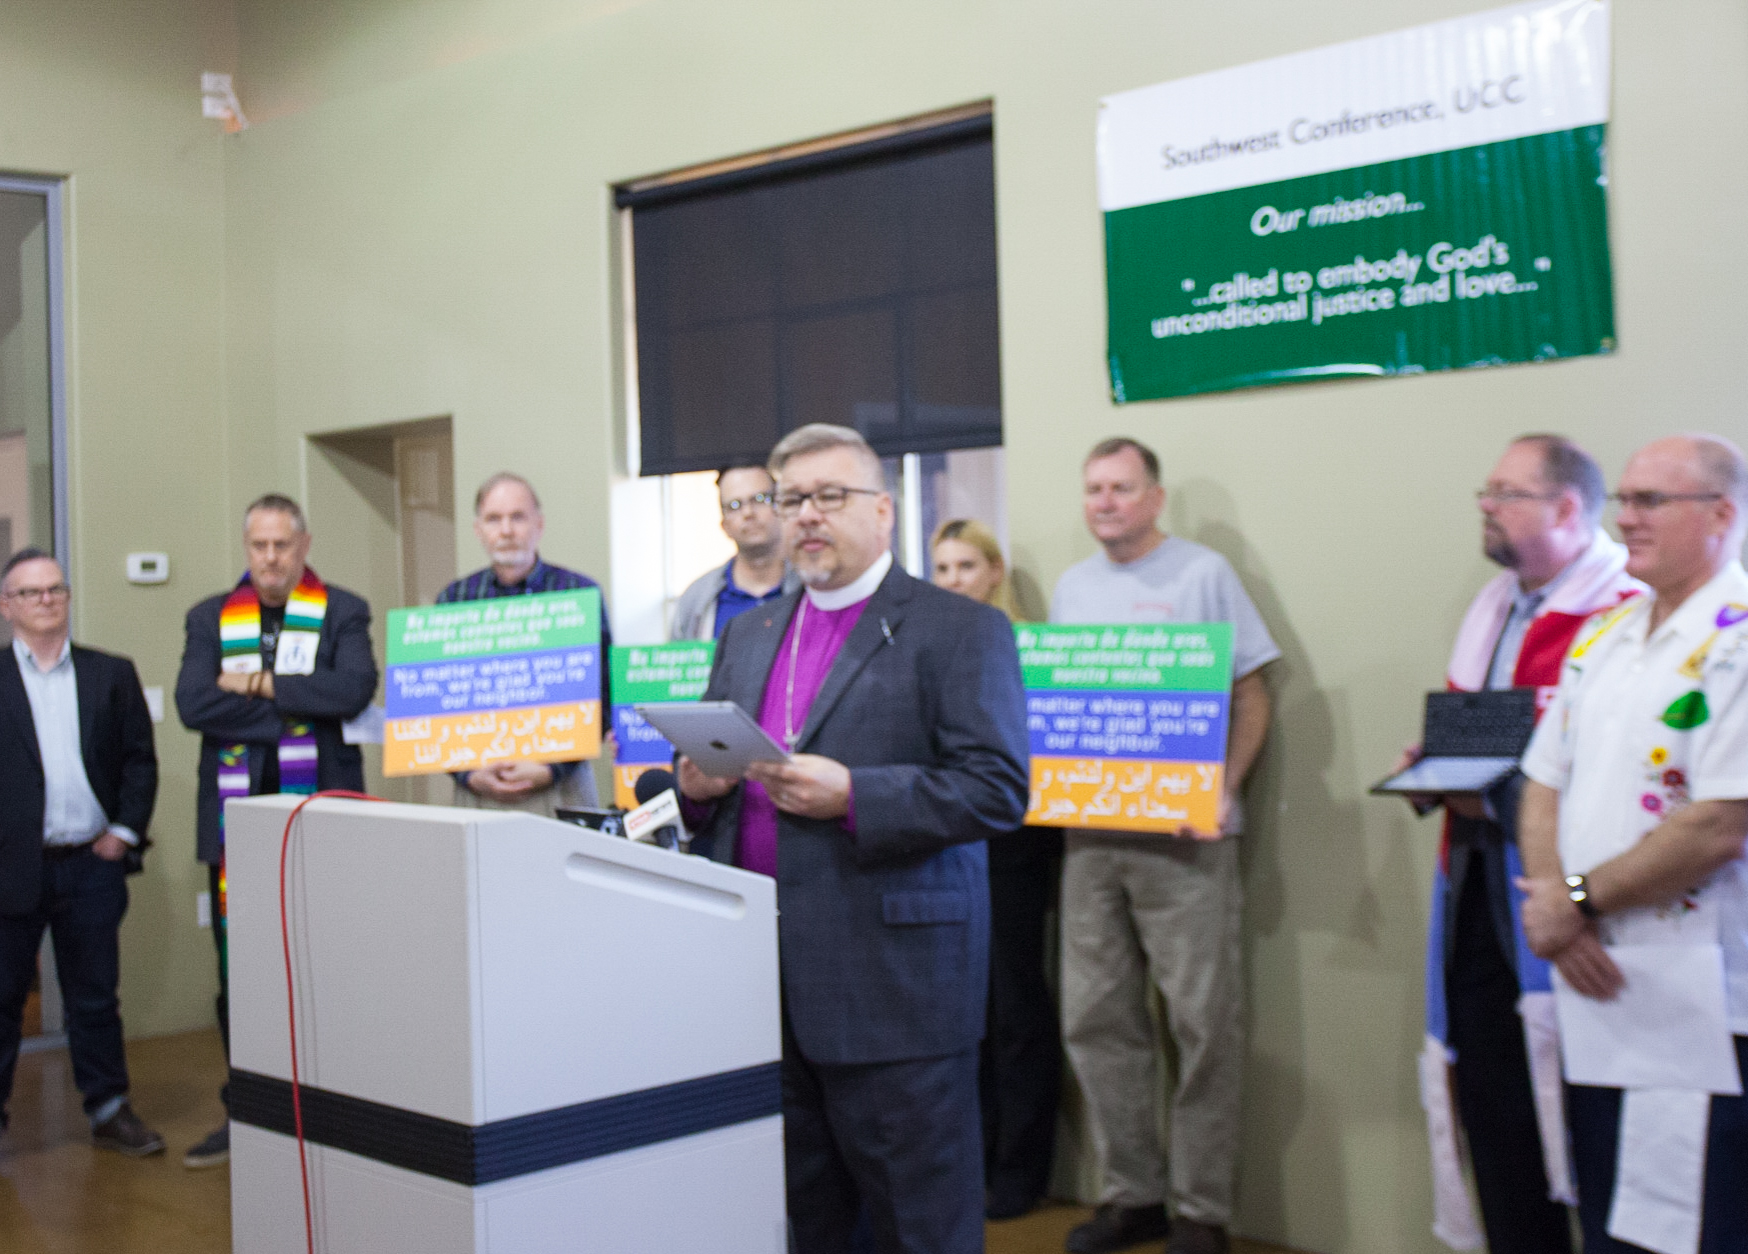 Southwest Conference Clergy